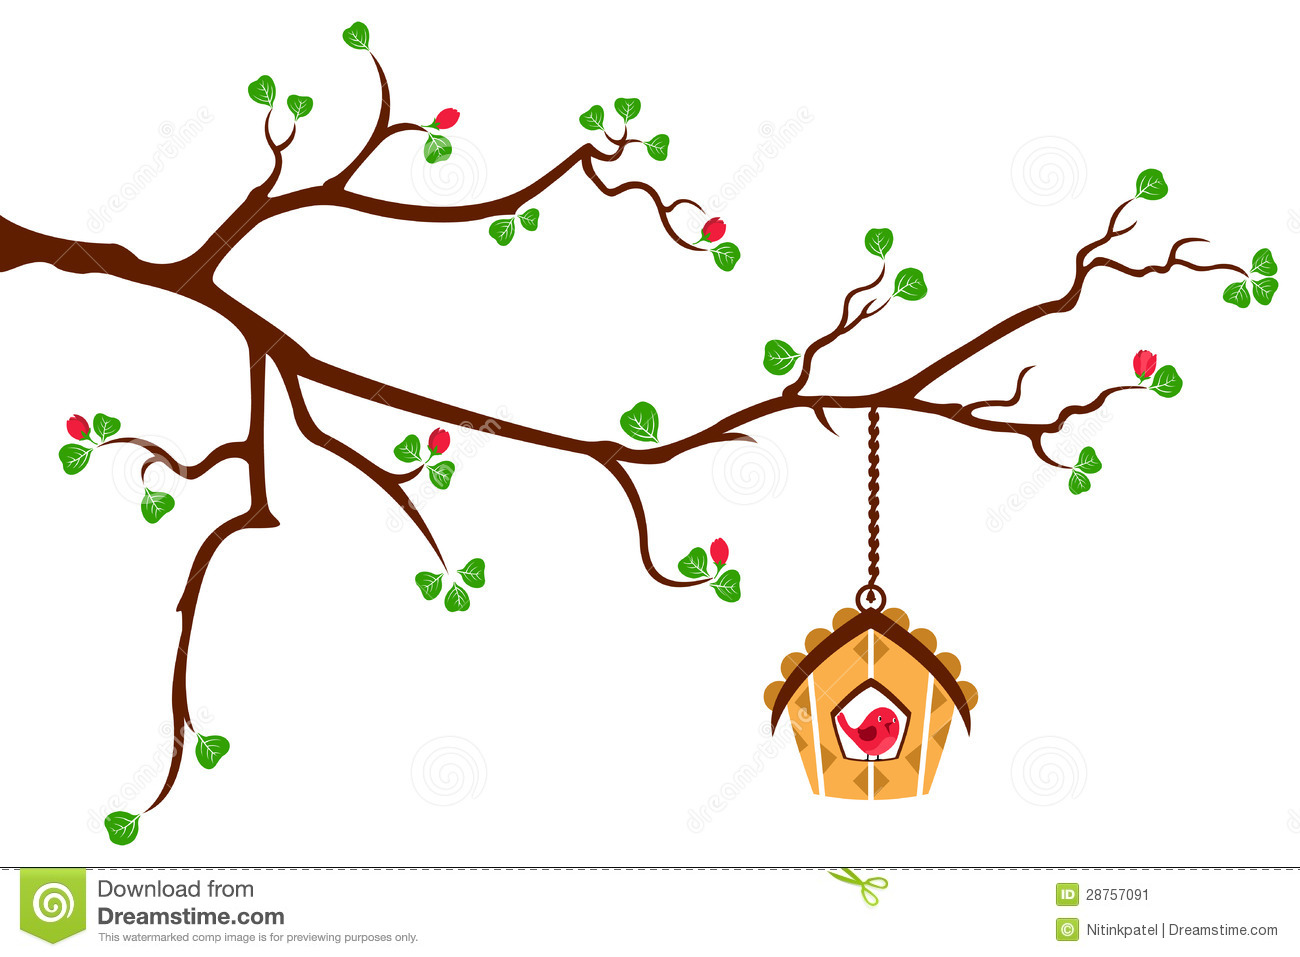 Blossom Wall Stickers Tree Branch With Hut Style Bird House Stock Illustration